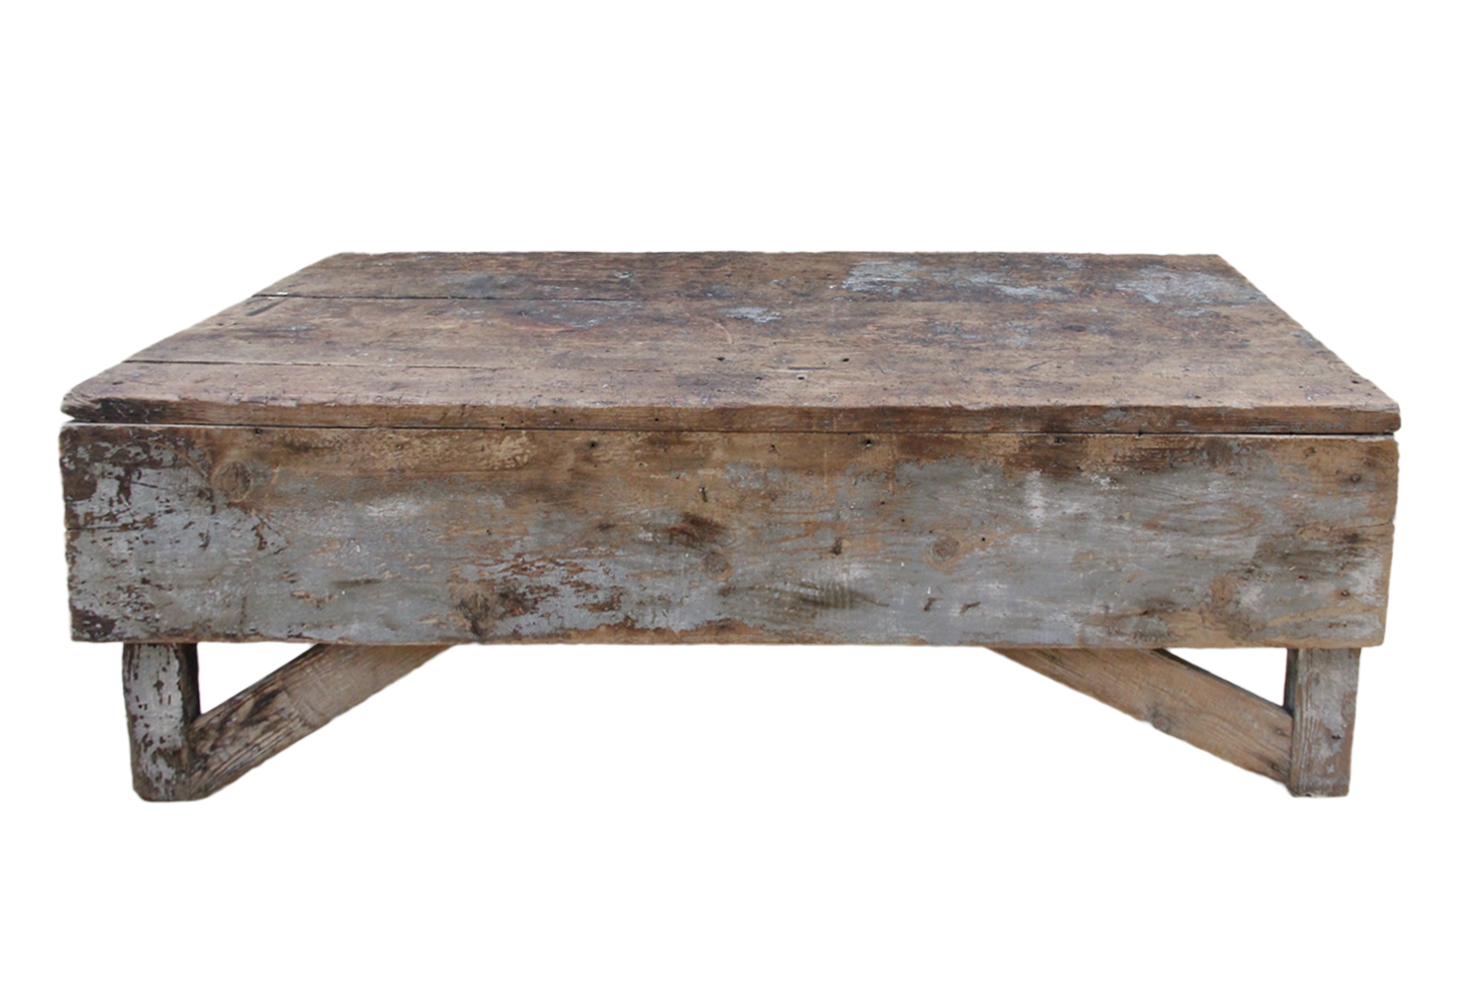 Antique Plank Farmhouse Coffee Table/Bench